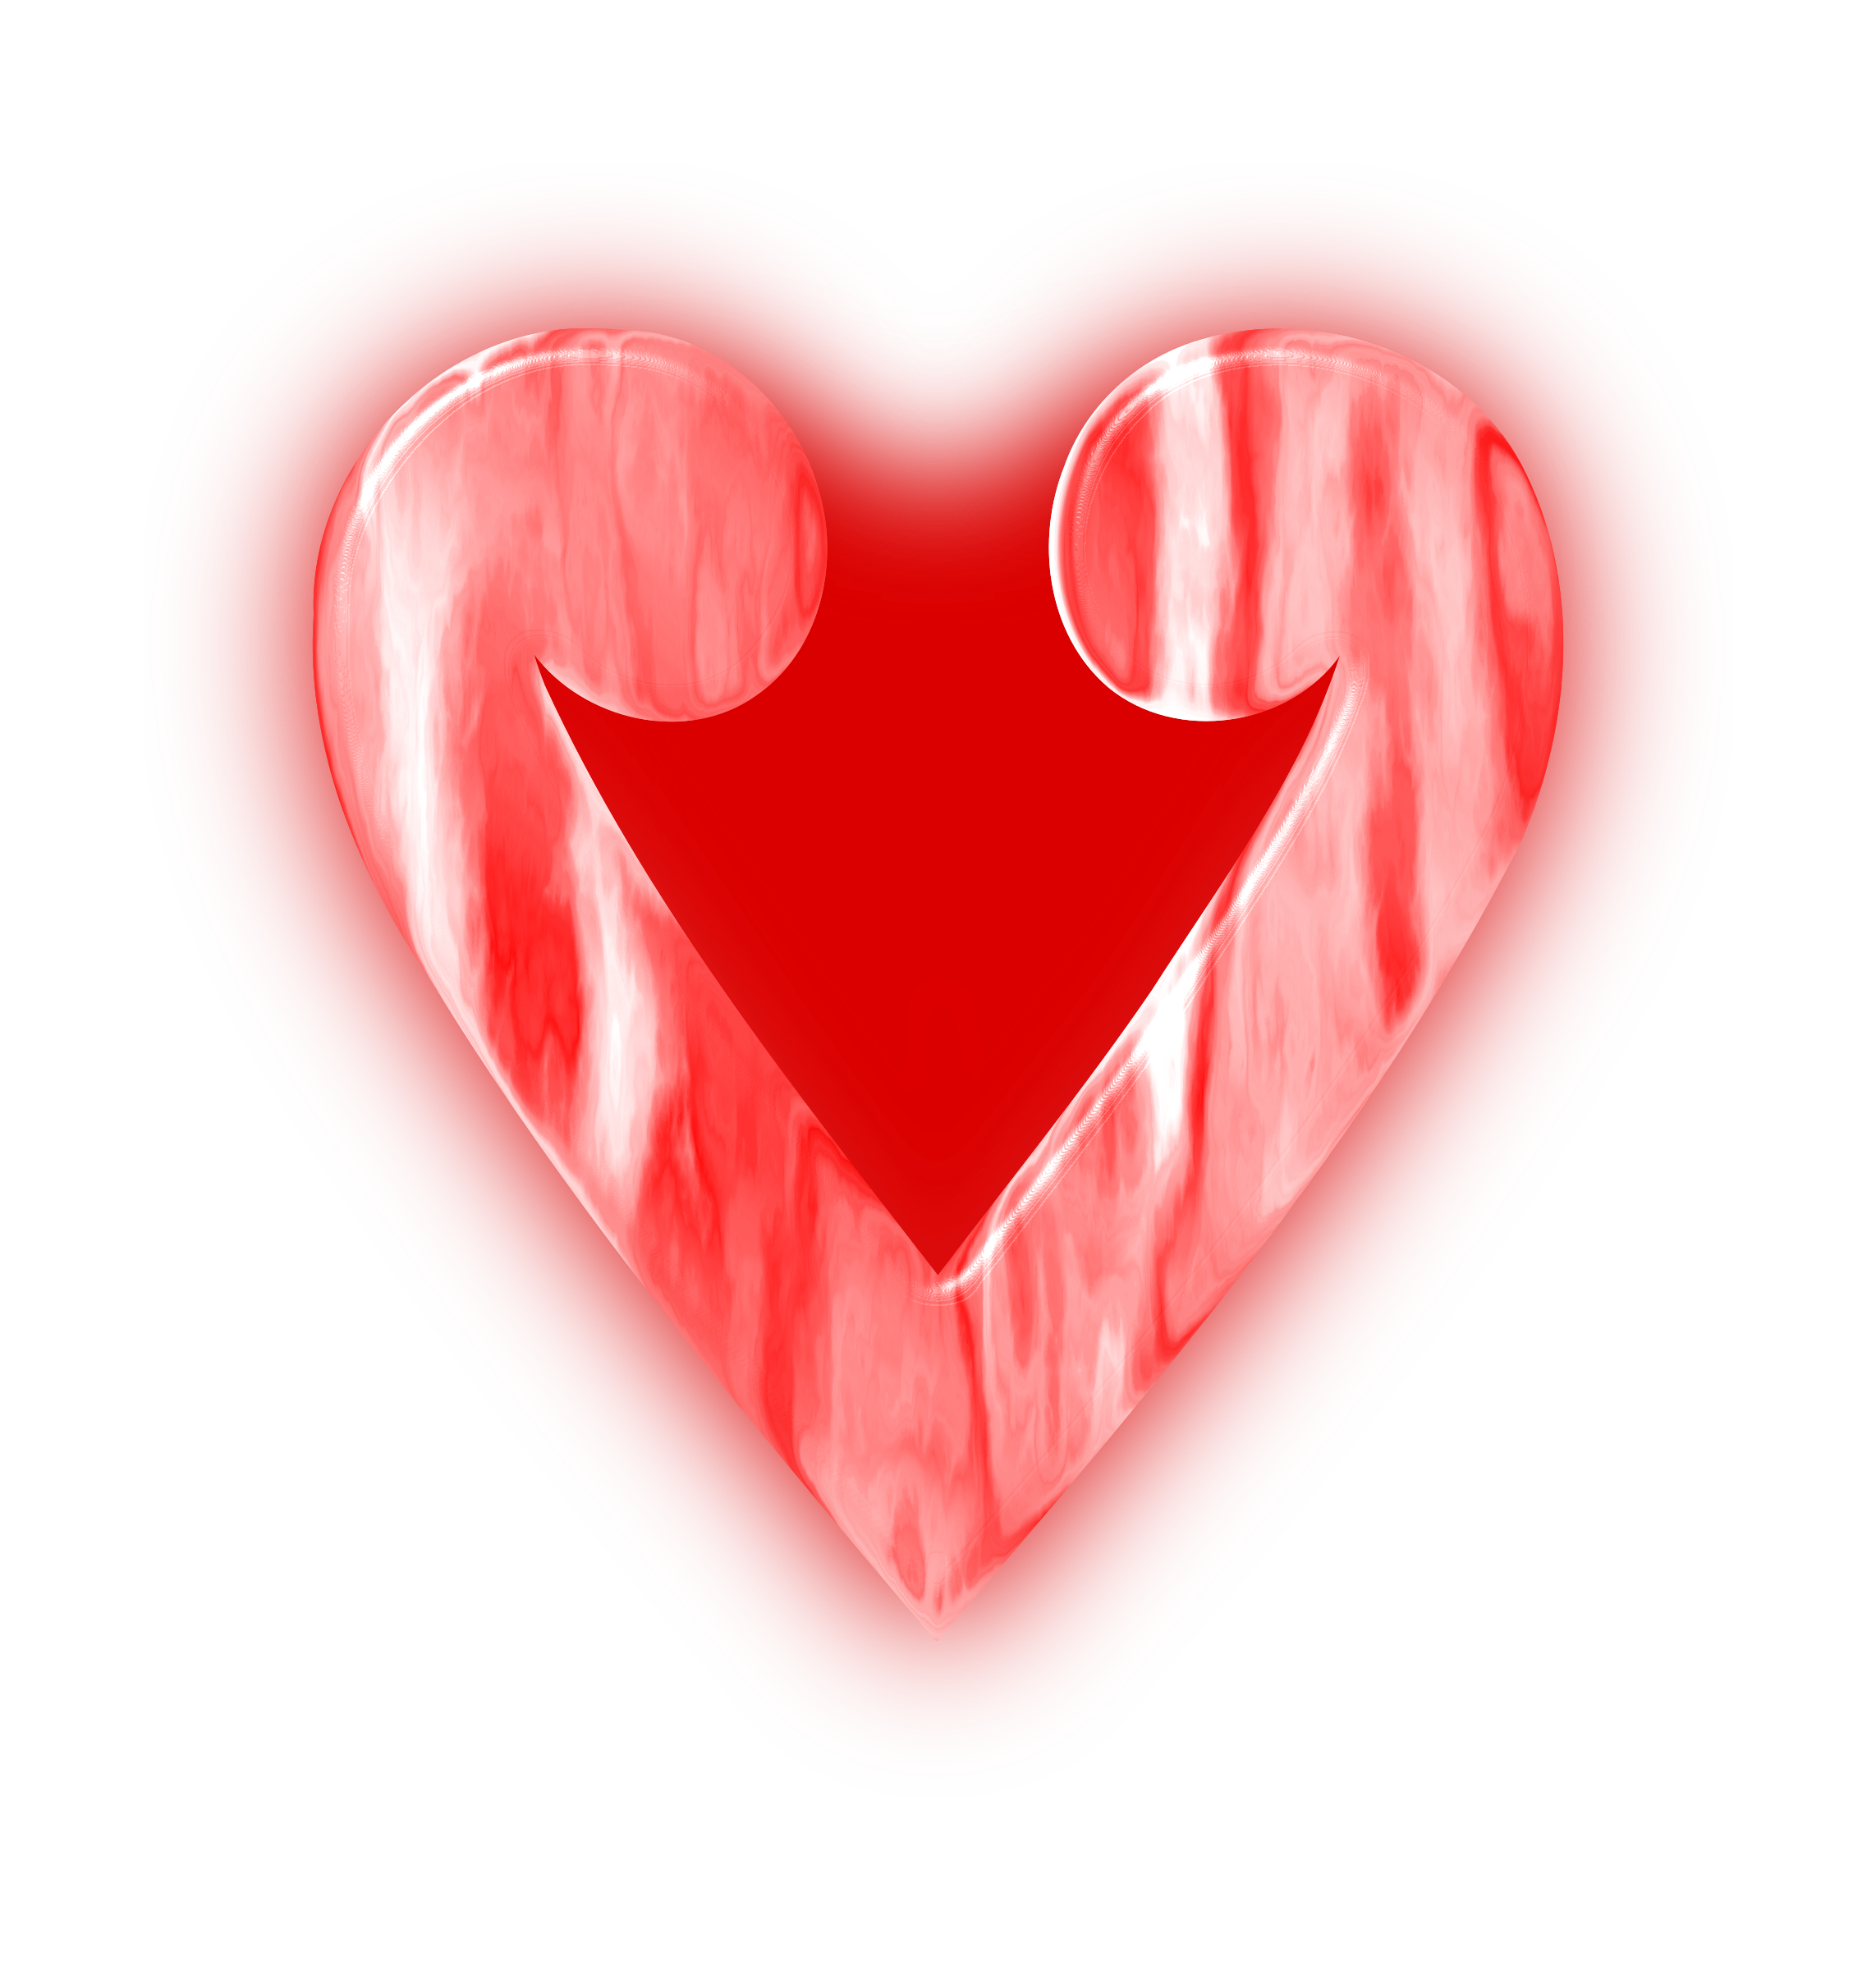 Stylised heart 3 by Firkin